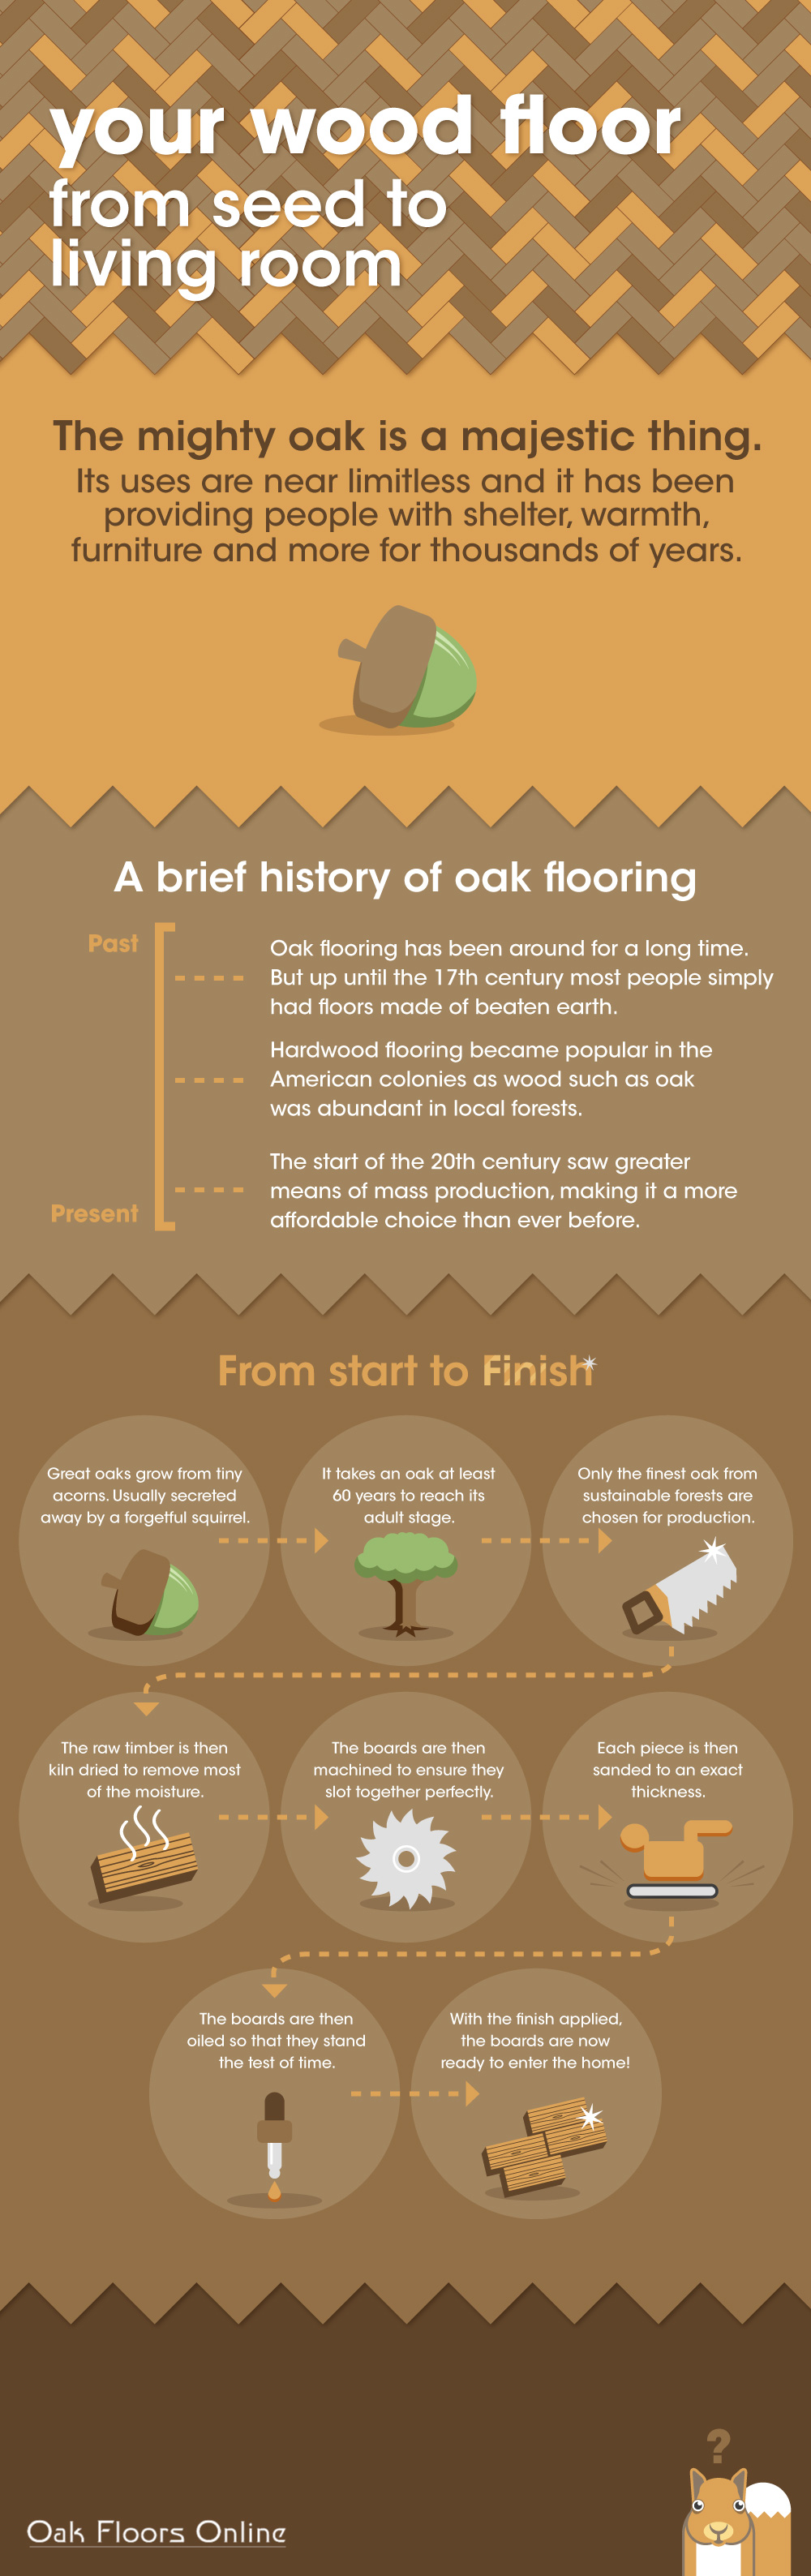 Oak Floors Online Infographic